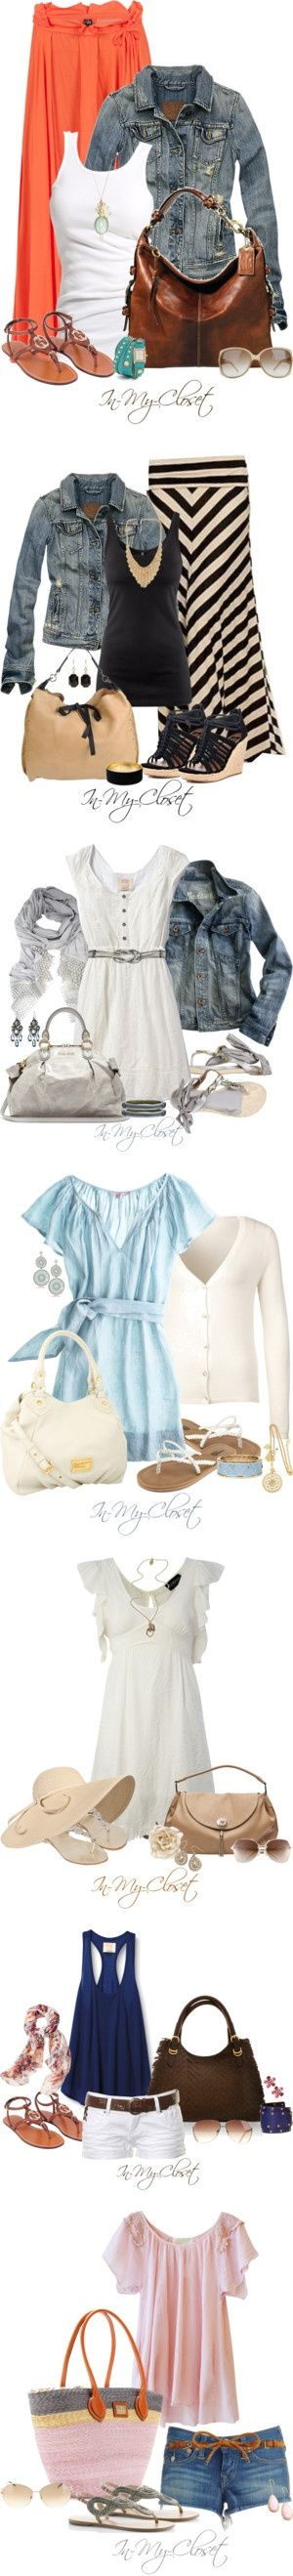 """Hurry Up Summer!"" by in-my-closet on Polyvore - Click image to find more Hair & Beauty Pinterest pins"